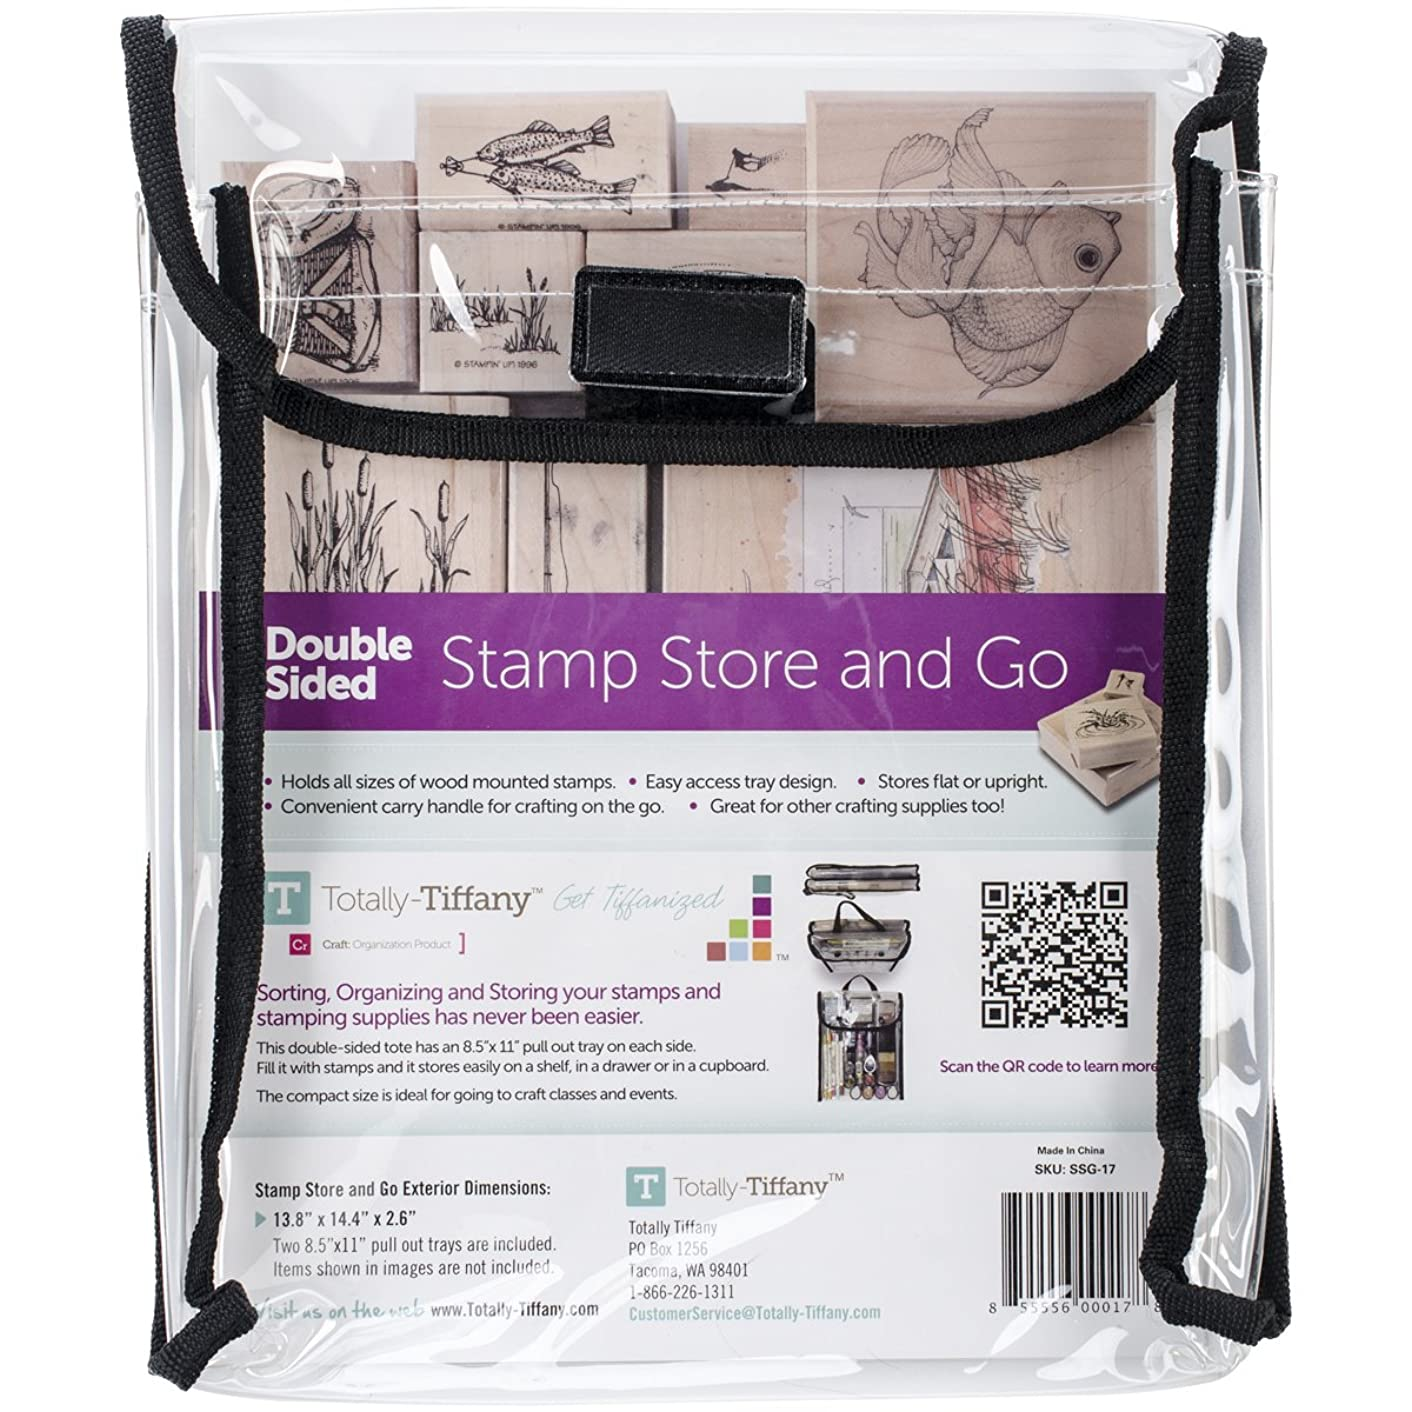 Totally-Tiffany Stamp, Store and Go Bag Double-Sided, 9 x 11.5 x 2-Inch